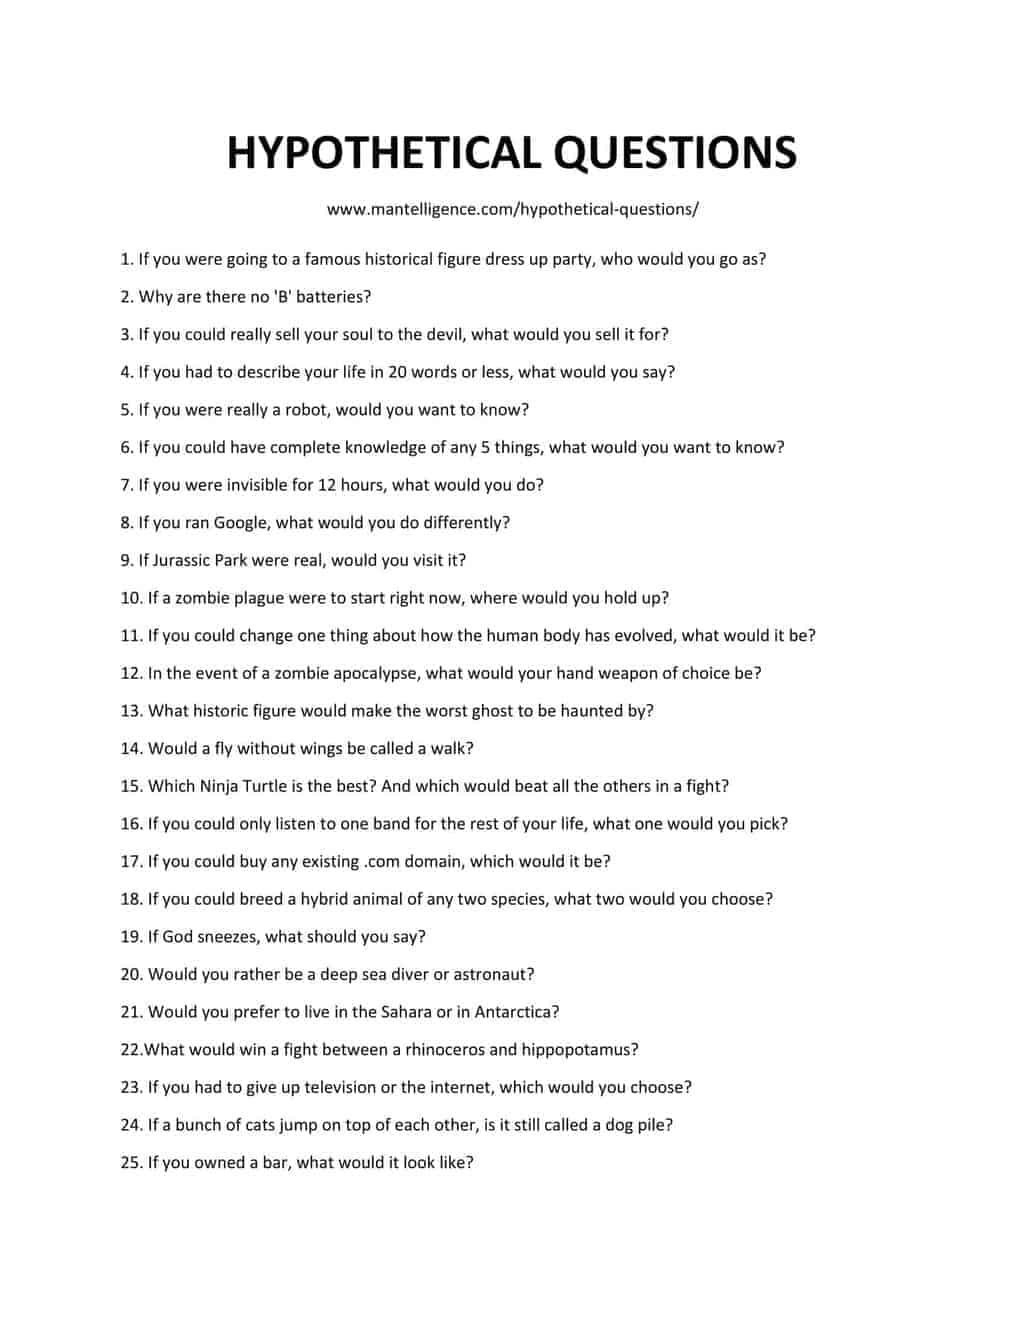 List Of Hypothetical Questions